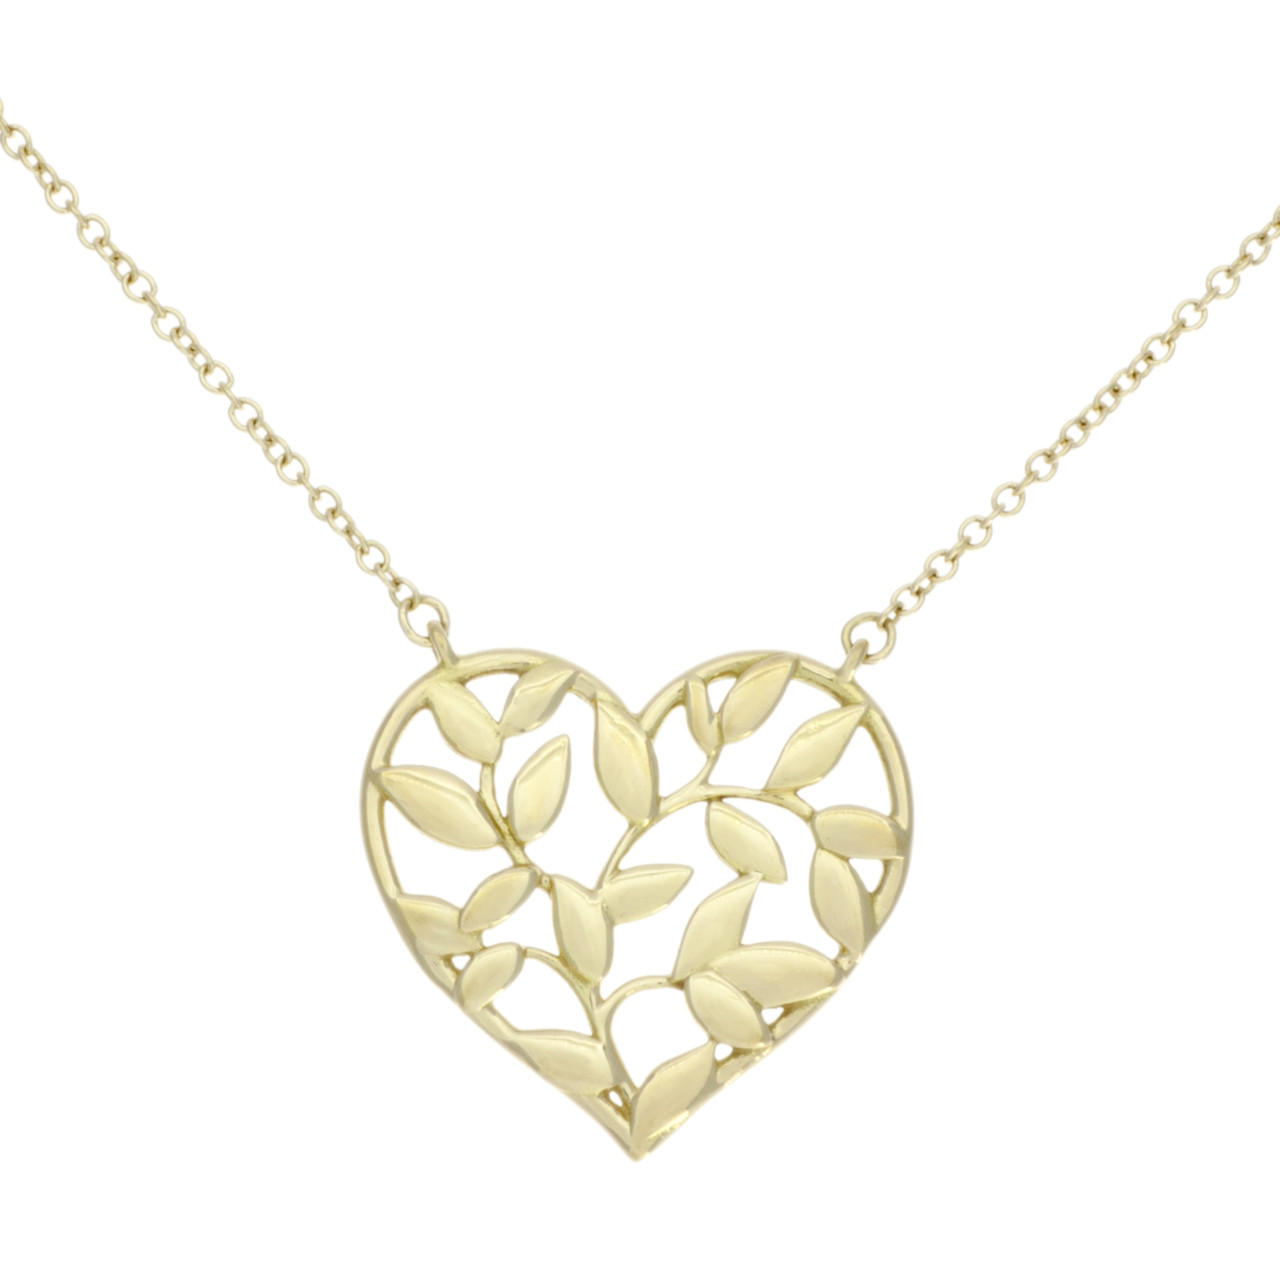 ca6bc94ee Tiffany & Co. 18K Yellow Gold Paloma Picasso Olive Leaf Heart ...